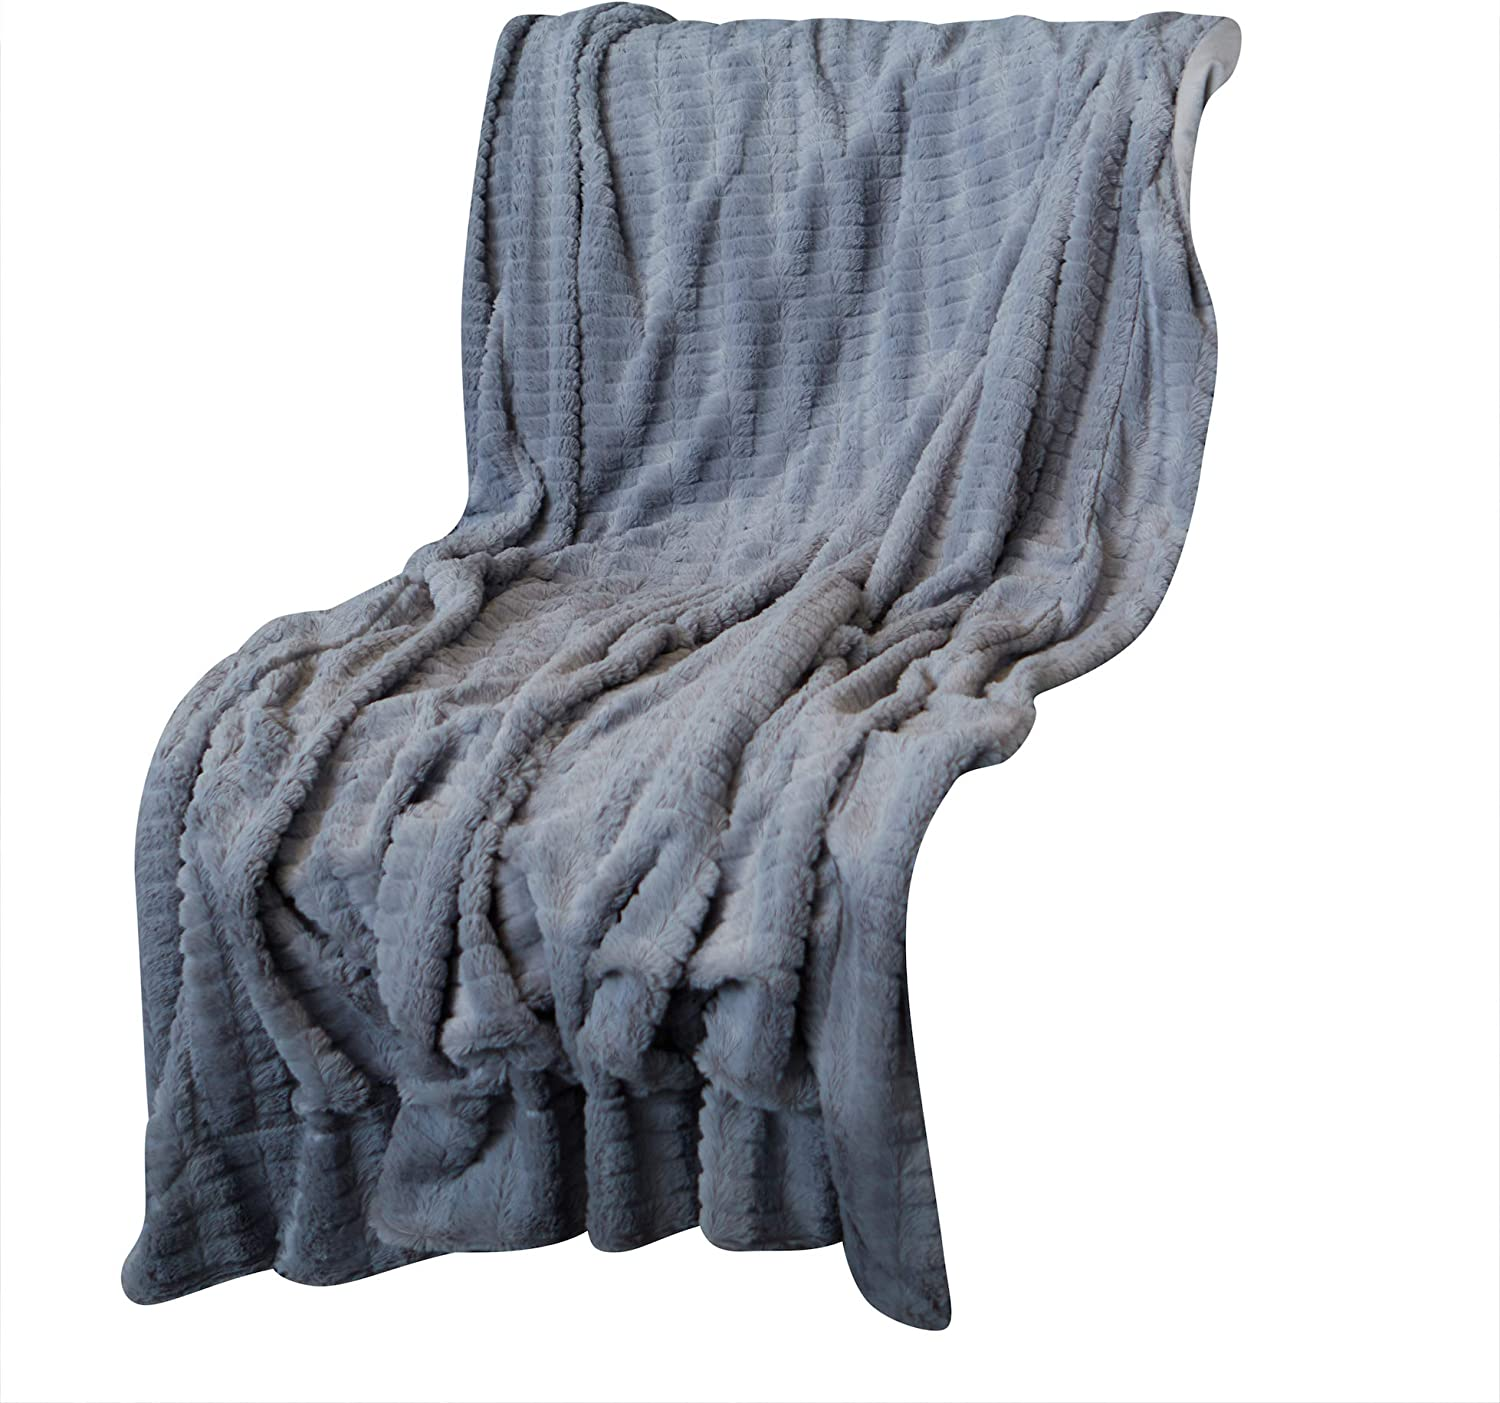 Oversized Faux Fur Throw Blanket for Couch and Bed, 50 in x 70 in (Alloy) Made by Celebrity Home Decorative